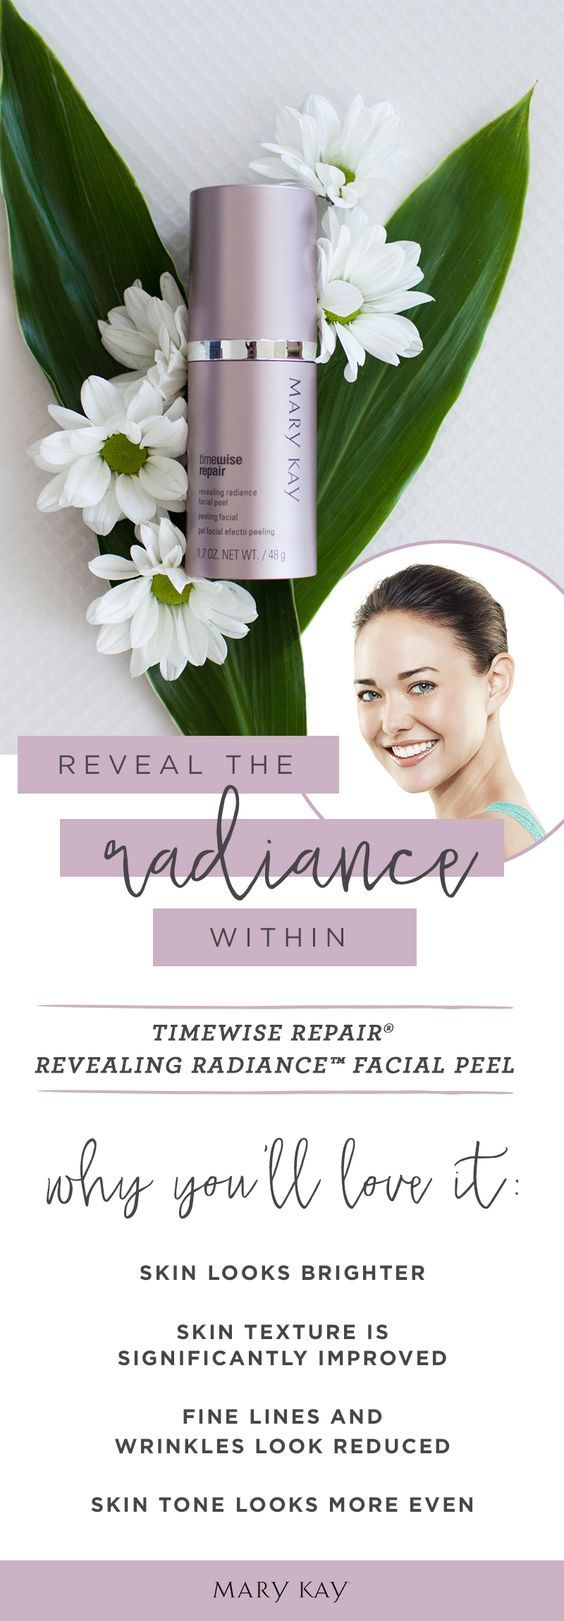 My Favourite new Product from Mary Kay Canada - Time Wise Repair glycolic facial peel!! <3 www.marykay.ca/jmainland